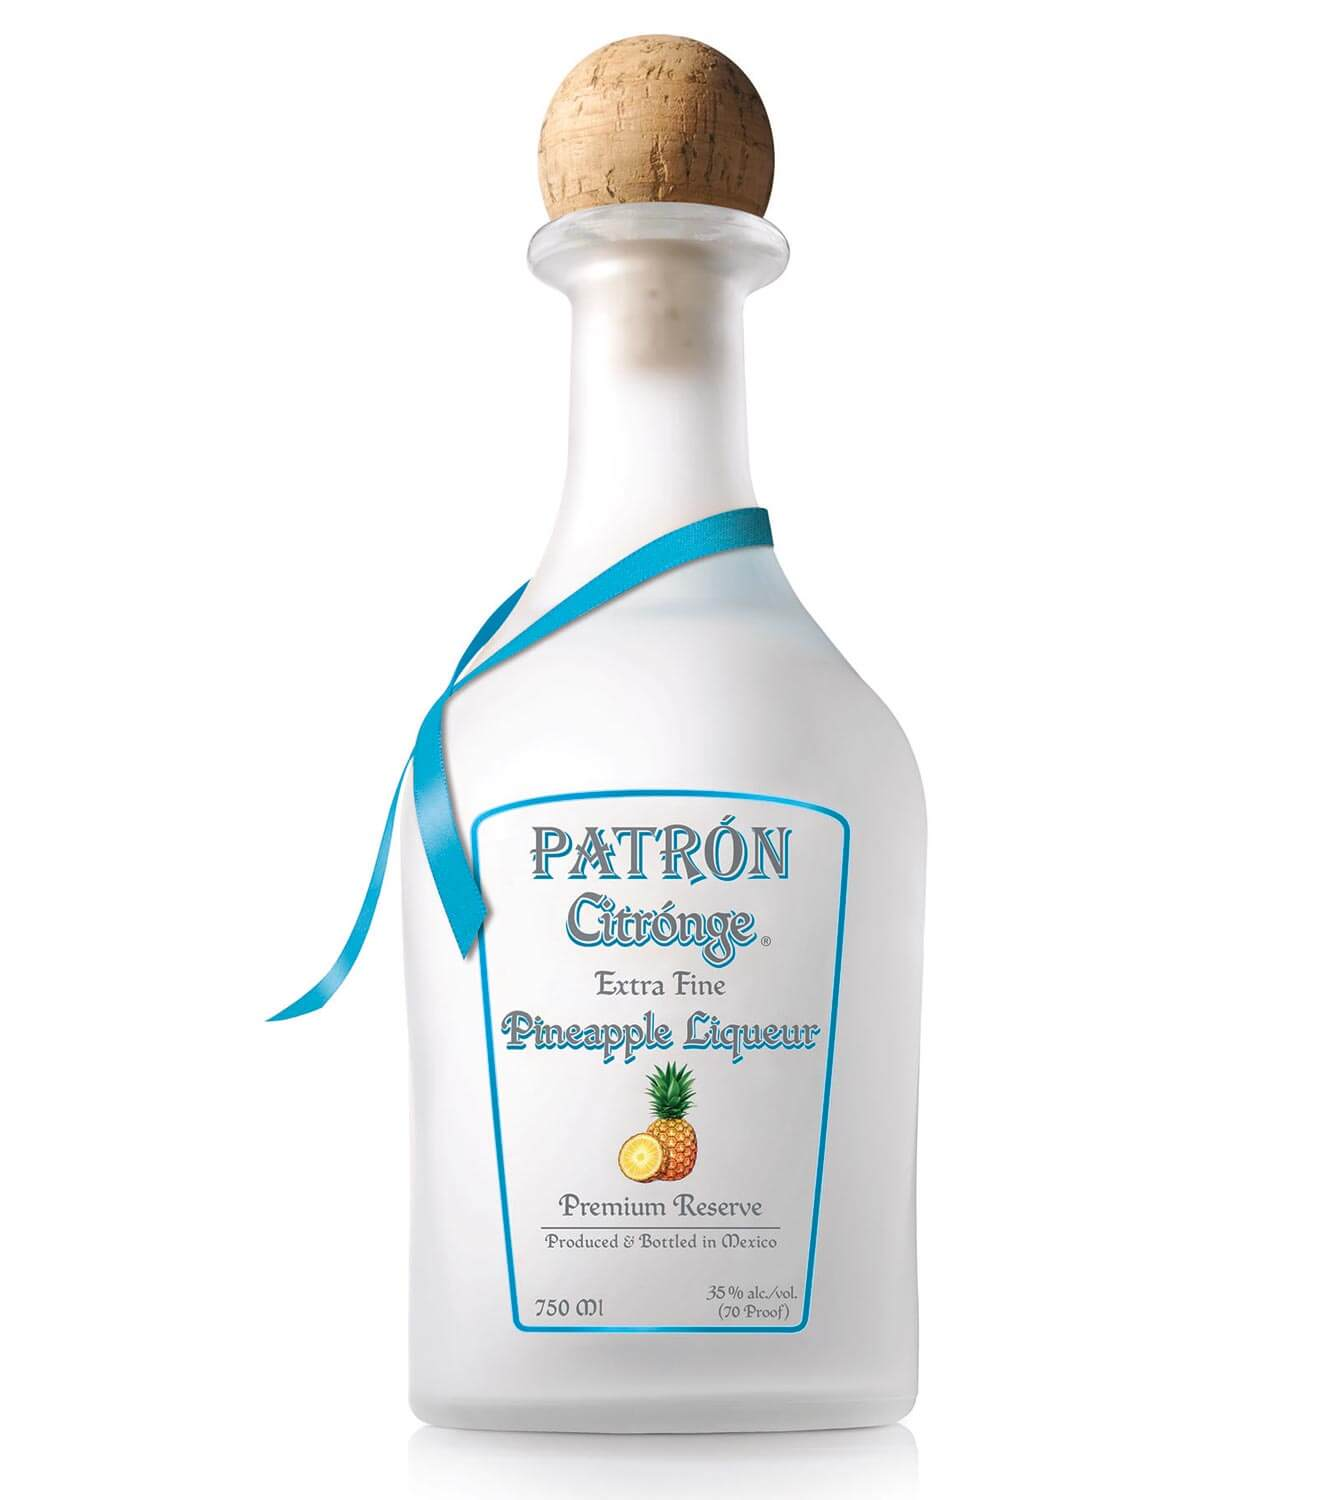 Patrón Citrónge Pineapple Liqueur, bottle on white